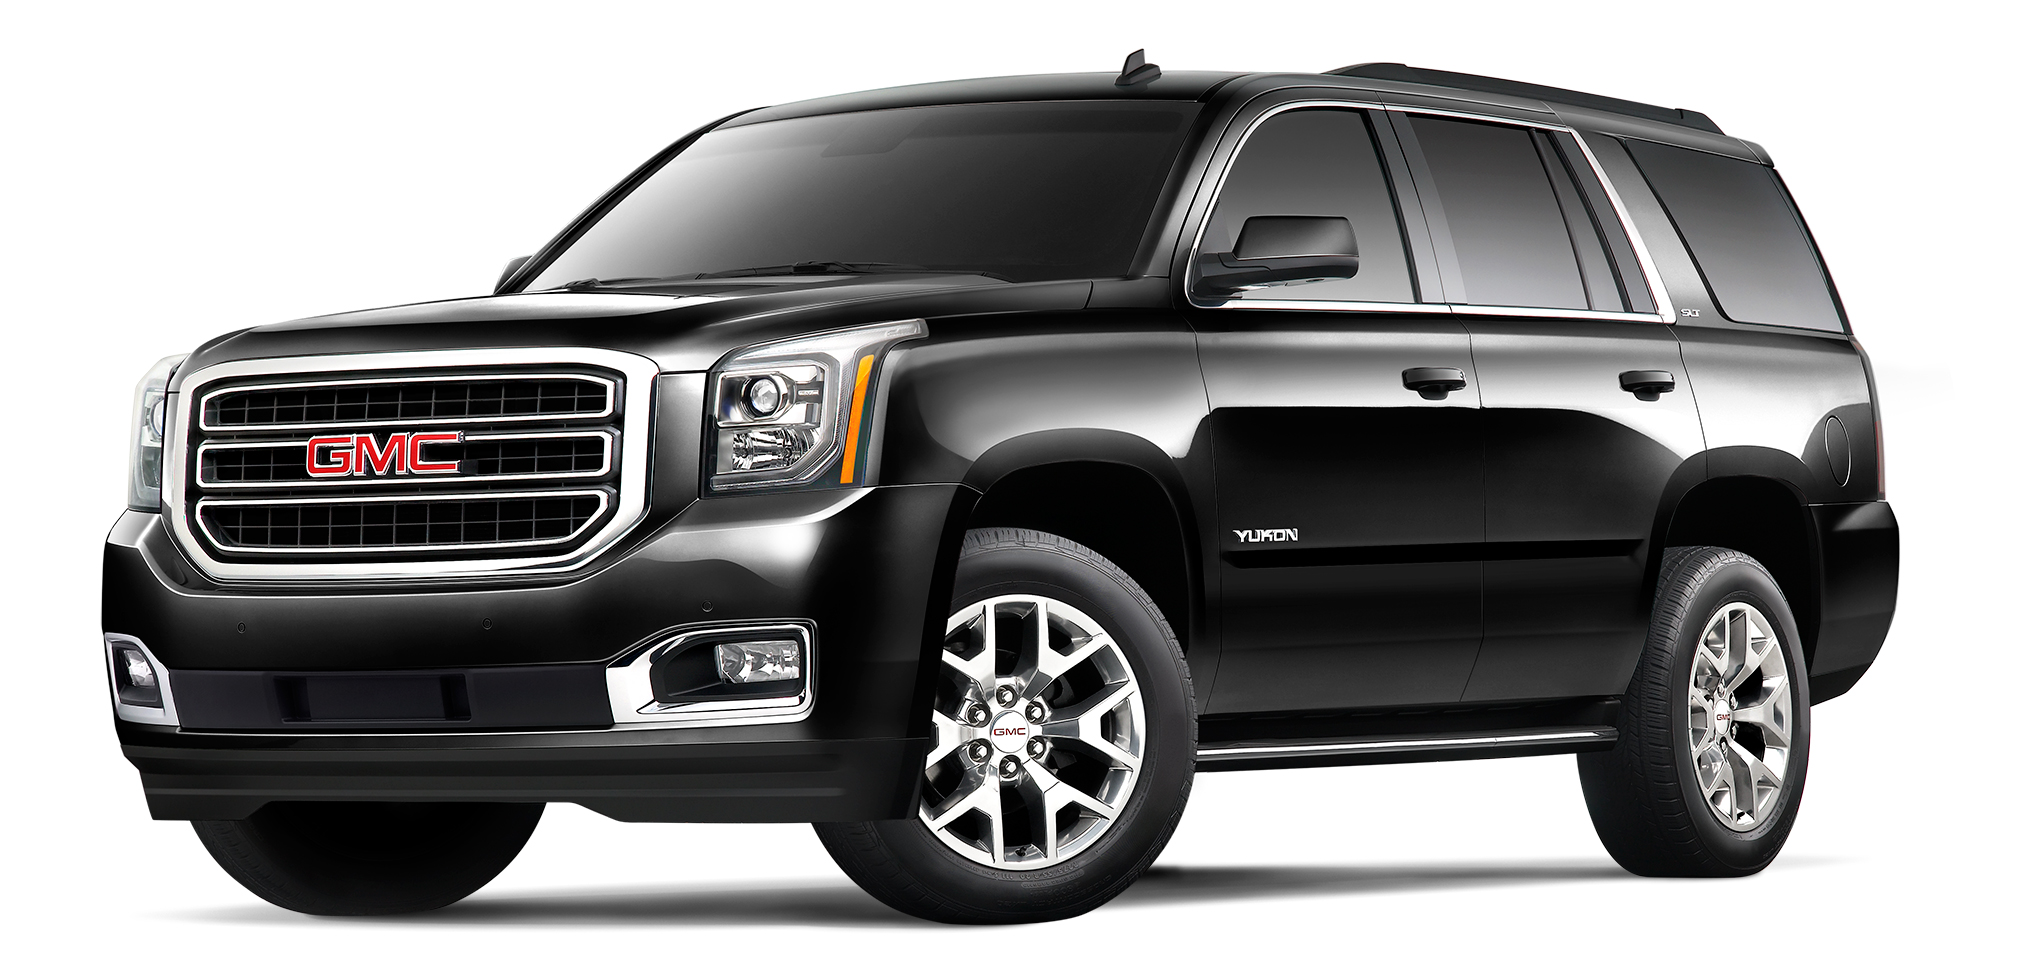 Gmc Yukon Colors